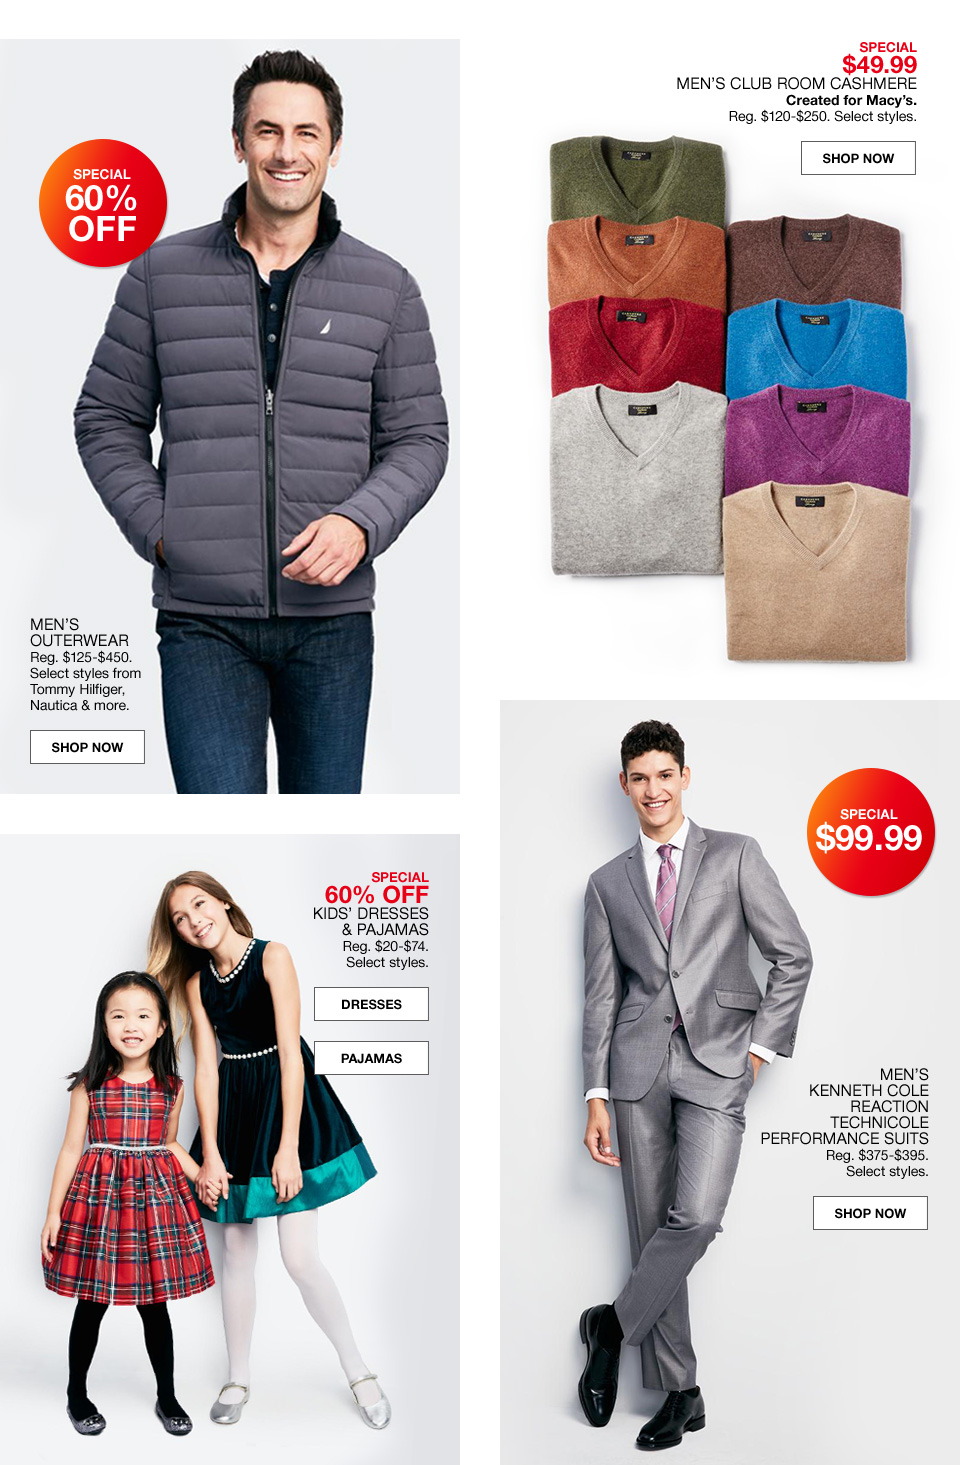 Special 60 percent off mens outerware. Regular 125 to 450 dollars. Select styles from Tommy Hiliger, Nautica and more. Special 49 dollars and 99 cents mens club room cashmere created for macys. Regular 120 to 250 dollars. Select styles. Special 60 percent off kids dresses and pajamas. Regular 20 to 74 dollars. Select styles. Special 99 dollars and 99 cents. Mens Kenneth Cole Reaction technicole performance suits. Regular 375 to 395 dollars. Select styles.